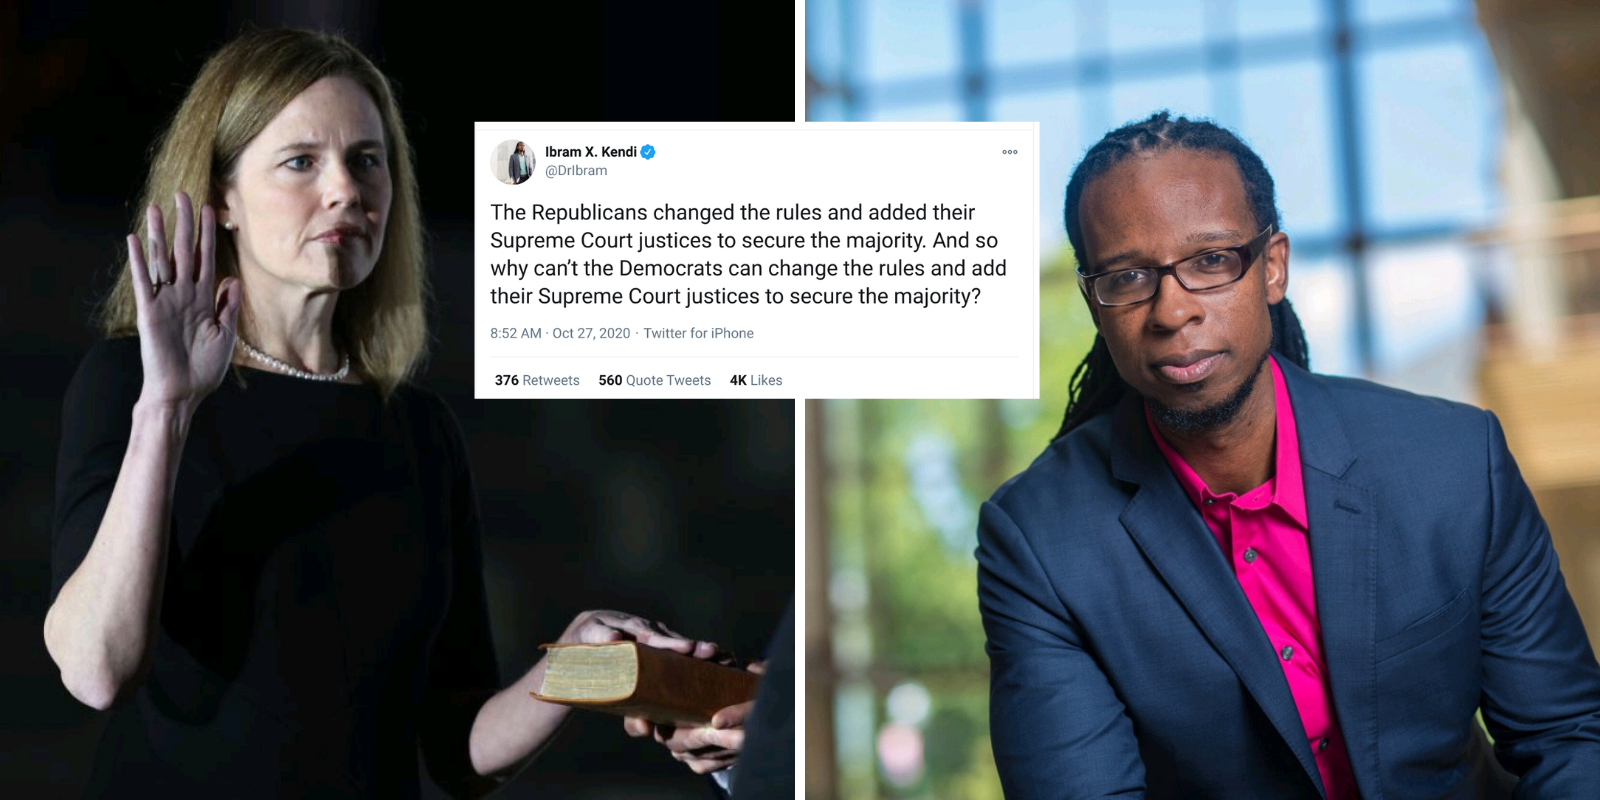 Prominent 'anti-racist' professor falsely claims Republicans changed rules to confirm Amy Coney Barrett